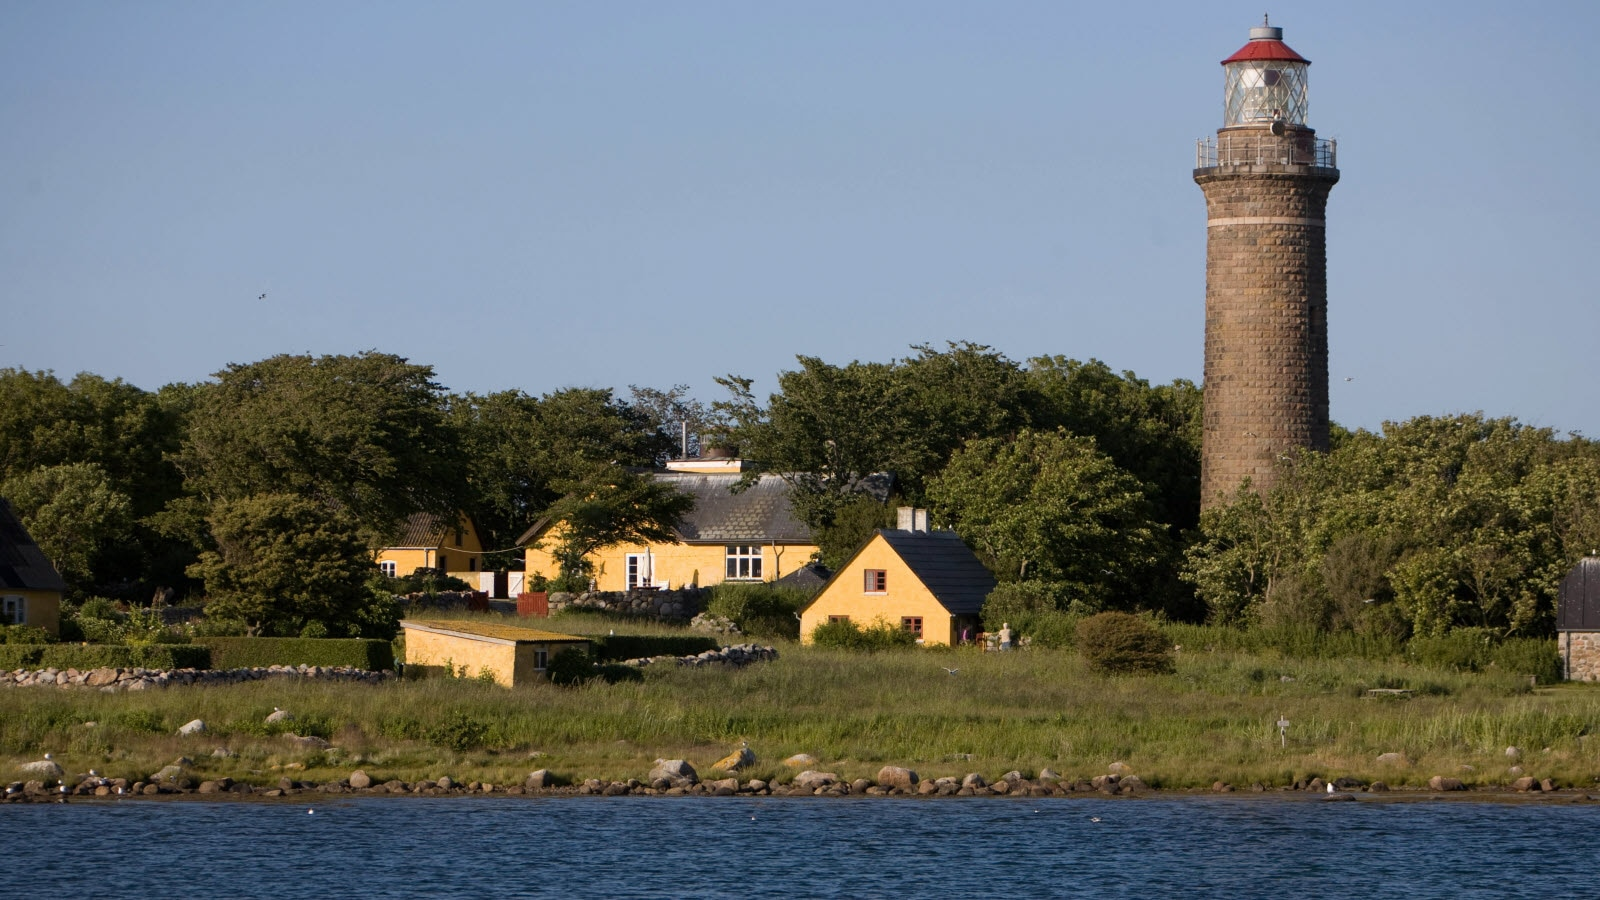 View of the water and lighthouse in Frederikshavn